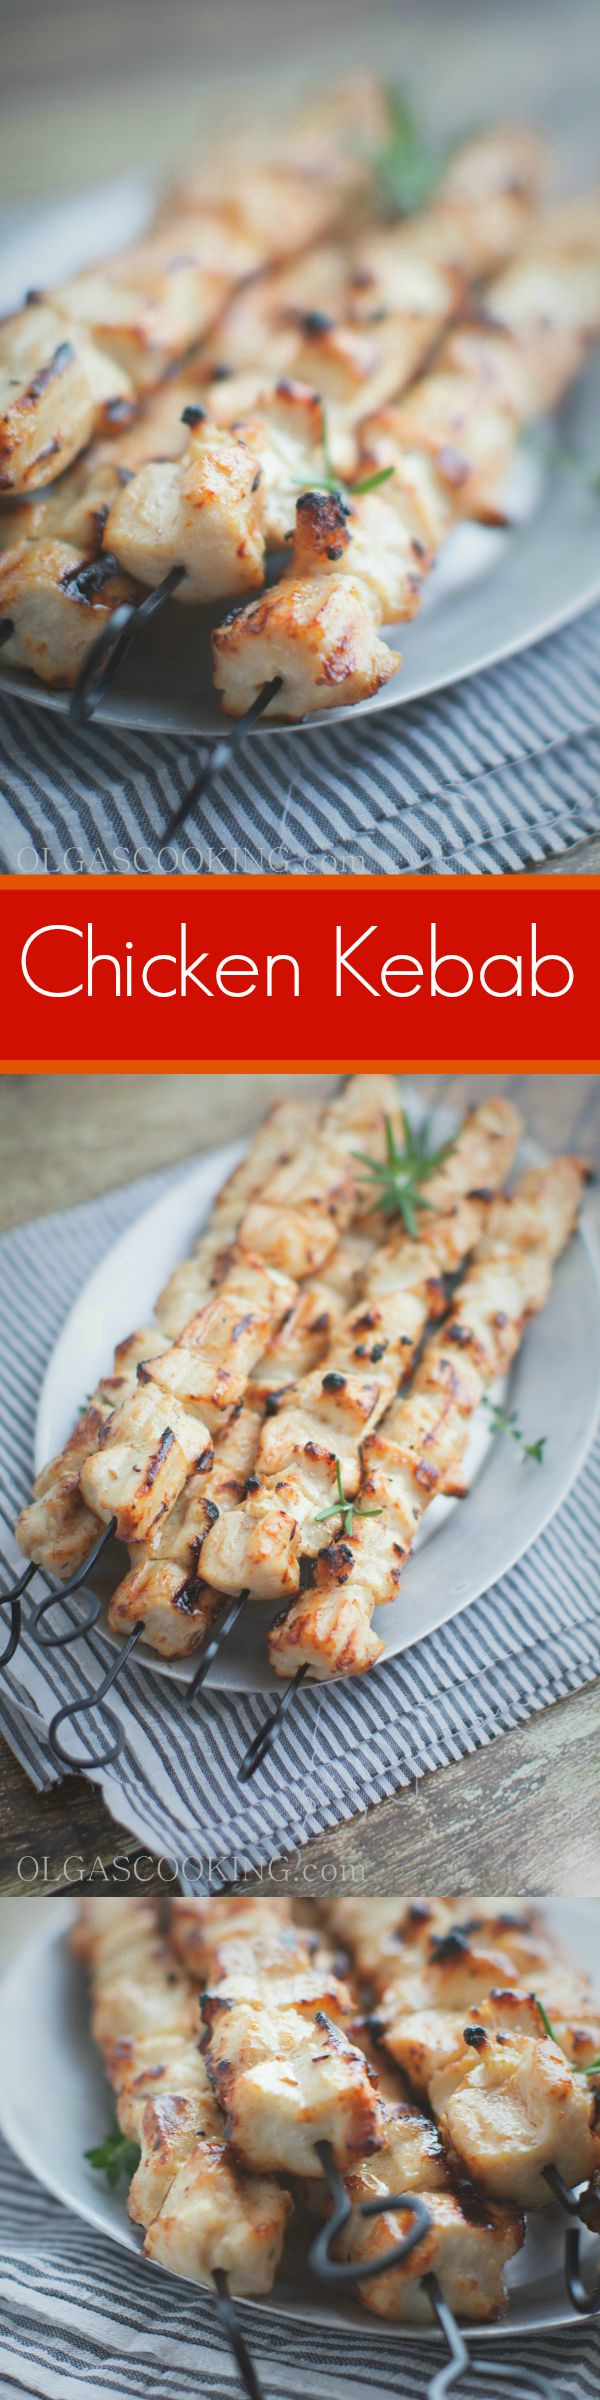 Quick and easy marinade with only few ingredients that leaves these kebabs juicy and delicious. So yummy and addictive!